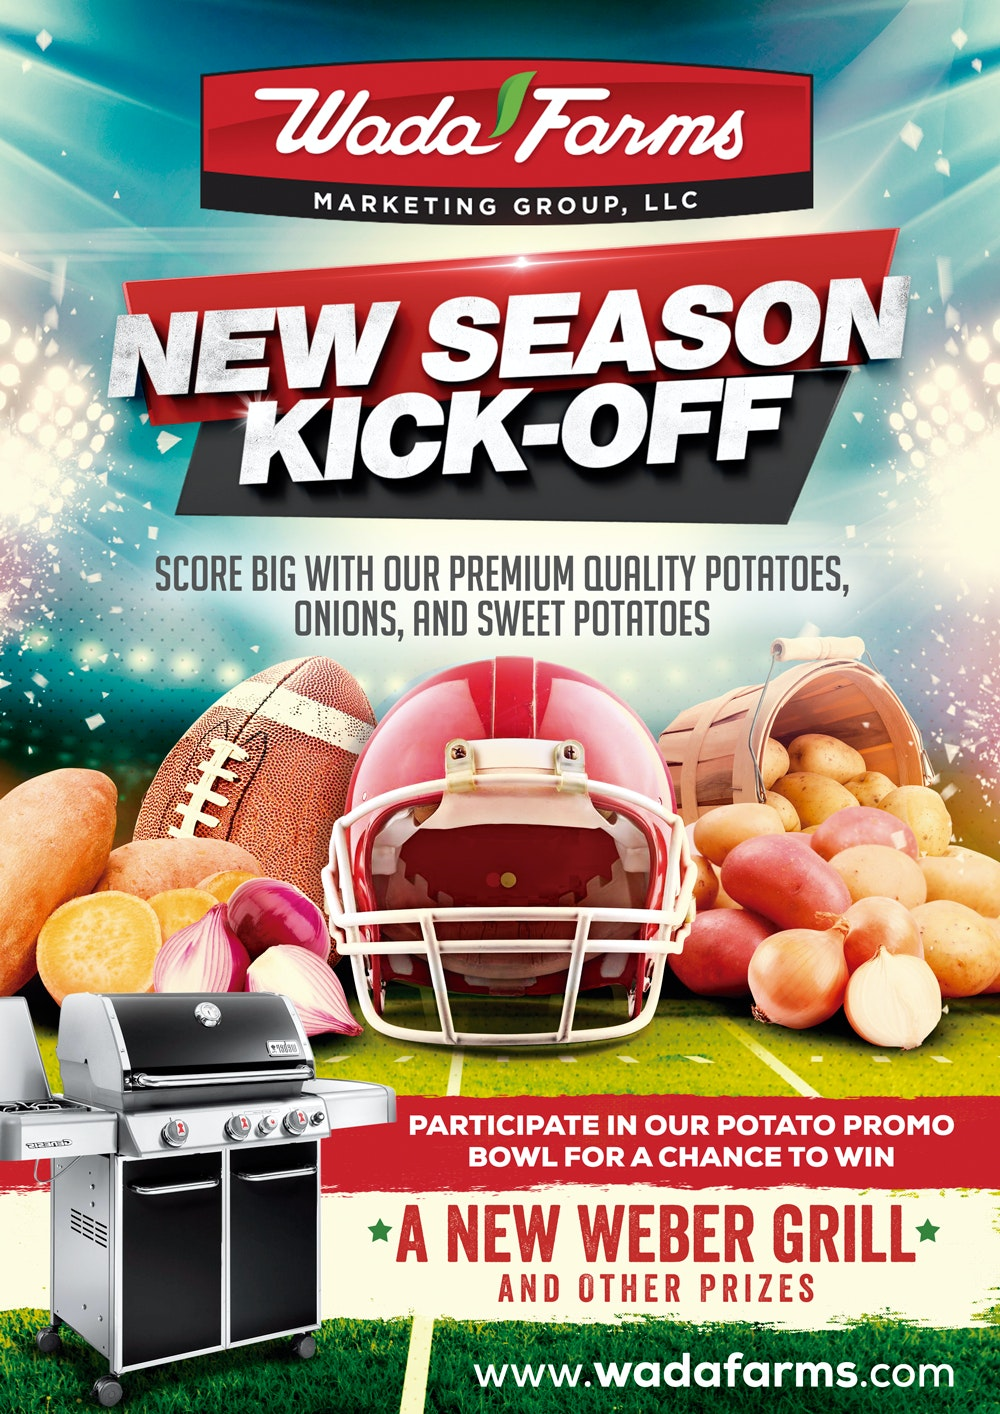 New season kick-off flyer with grill promotion